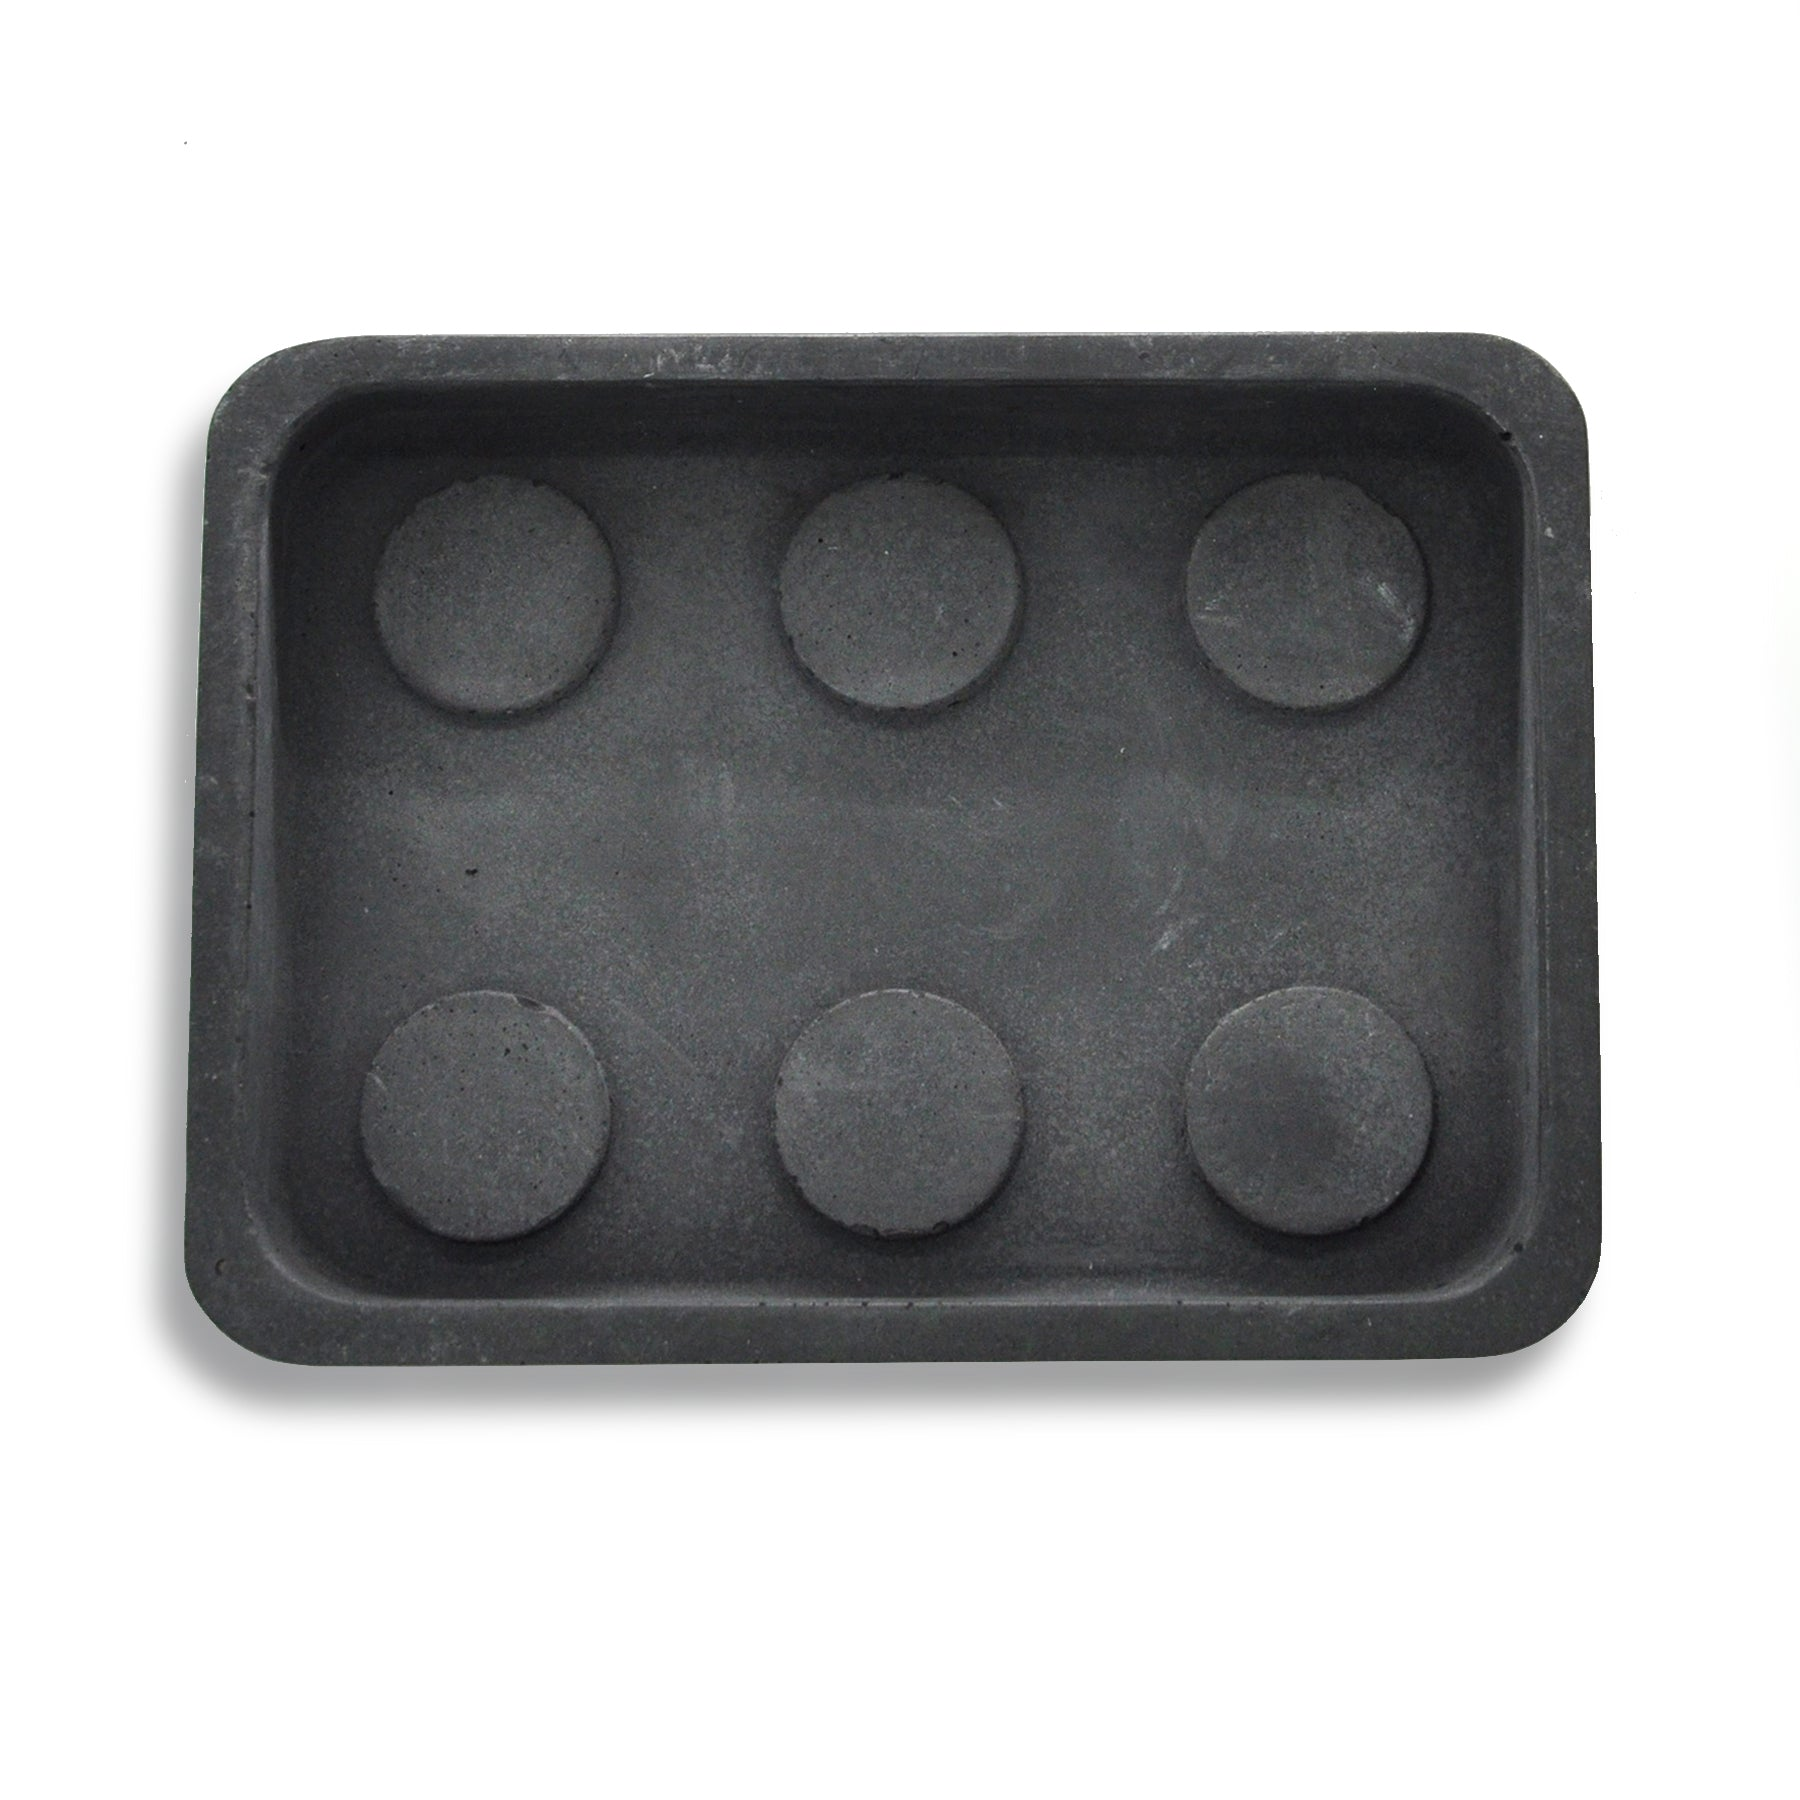 Cosmic Concrete Soap Dish